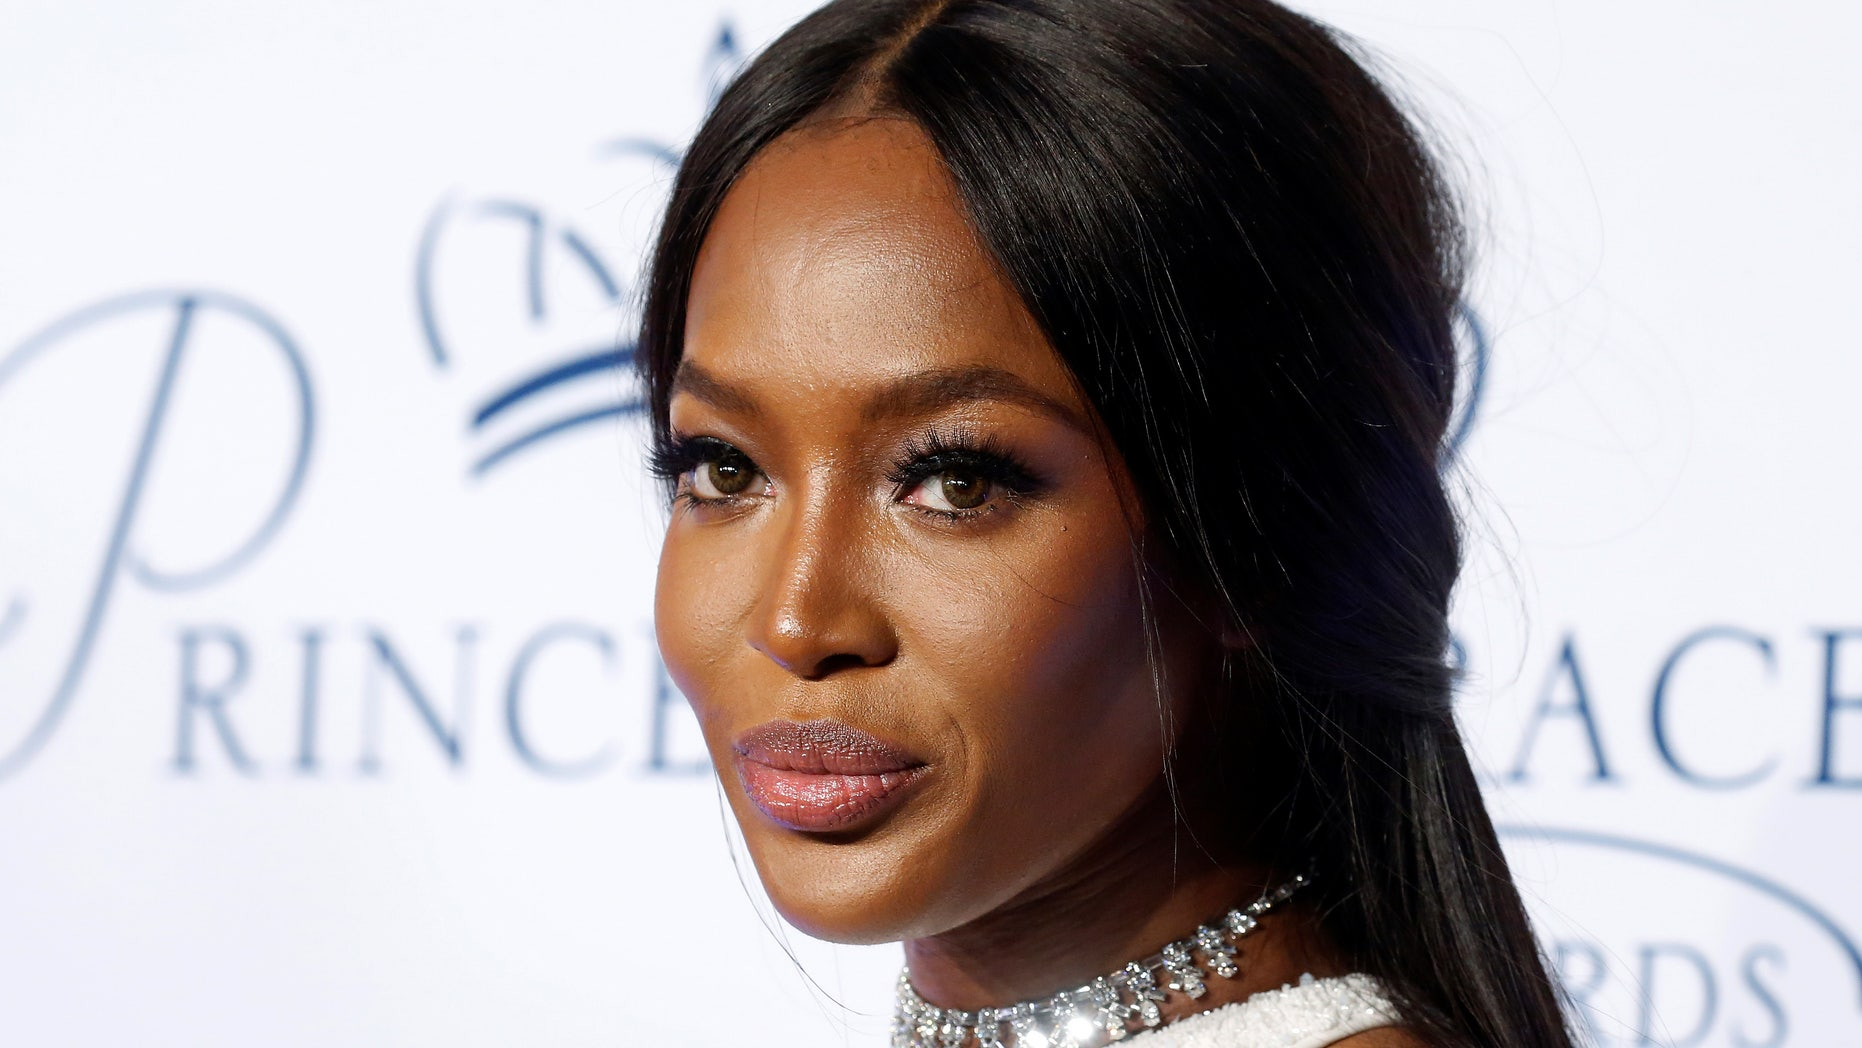 Model Naomi Campbell arrives for the 2016 Princess Grace Awards Gala in the Manhattan borough of New York, New York, U.S., October 24, 2016.